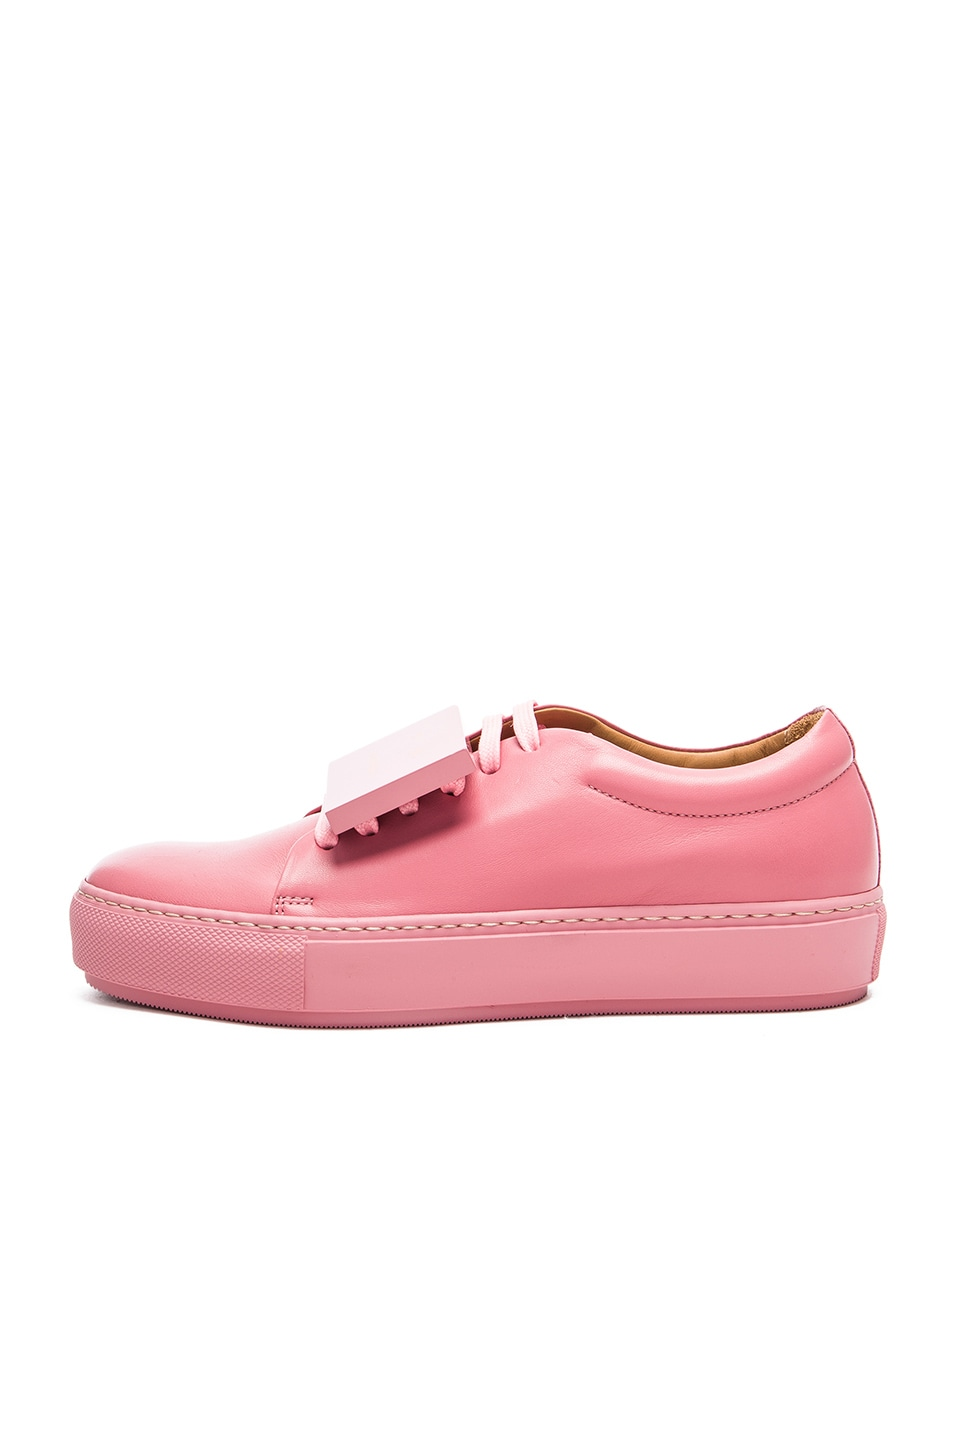 Adriana Acne Leather Sneakers Turnup PinkFwrd Bubble In Studios WCexrdBo